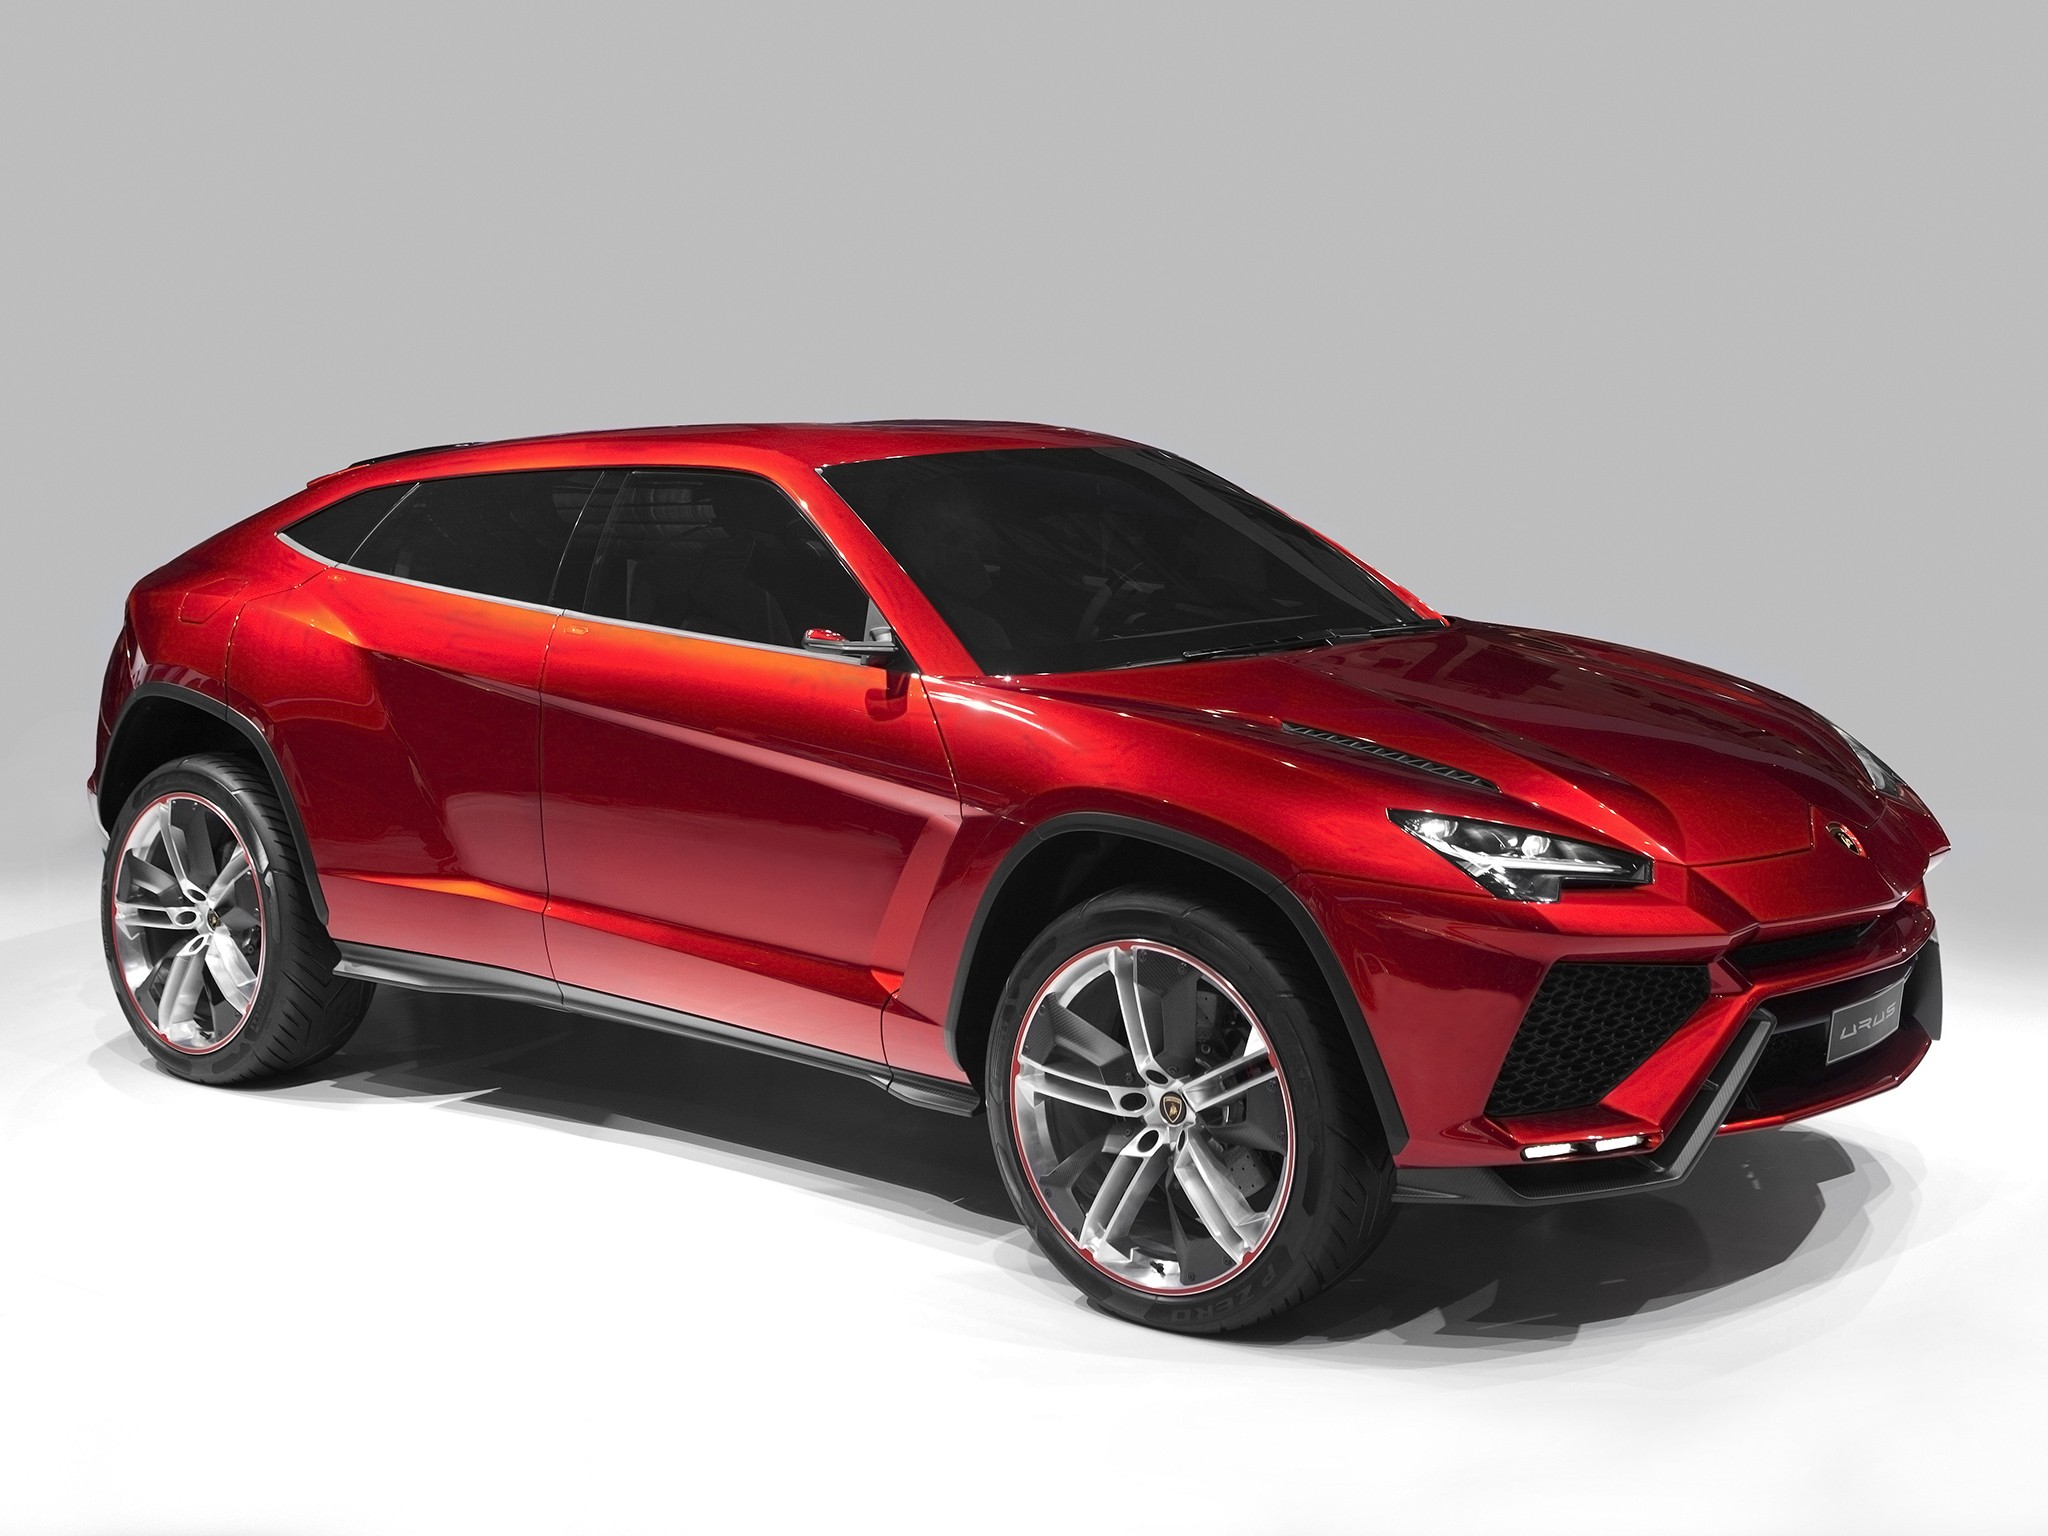 lamborghini urus confirmed to use 4 liter twin turbo v8 on sale in 2018 autoevolution. Black Bedroom Furniture Sets. Home Design Ideas